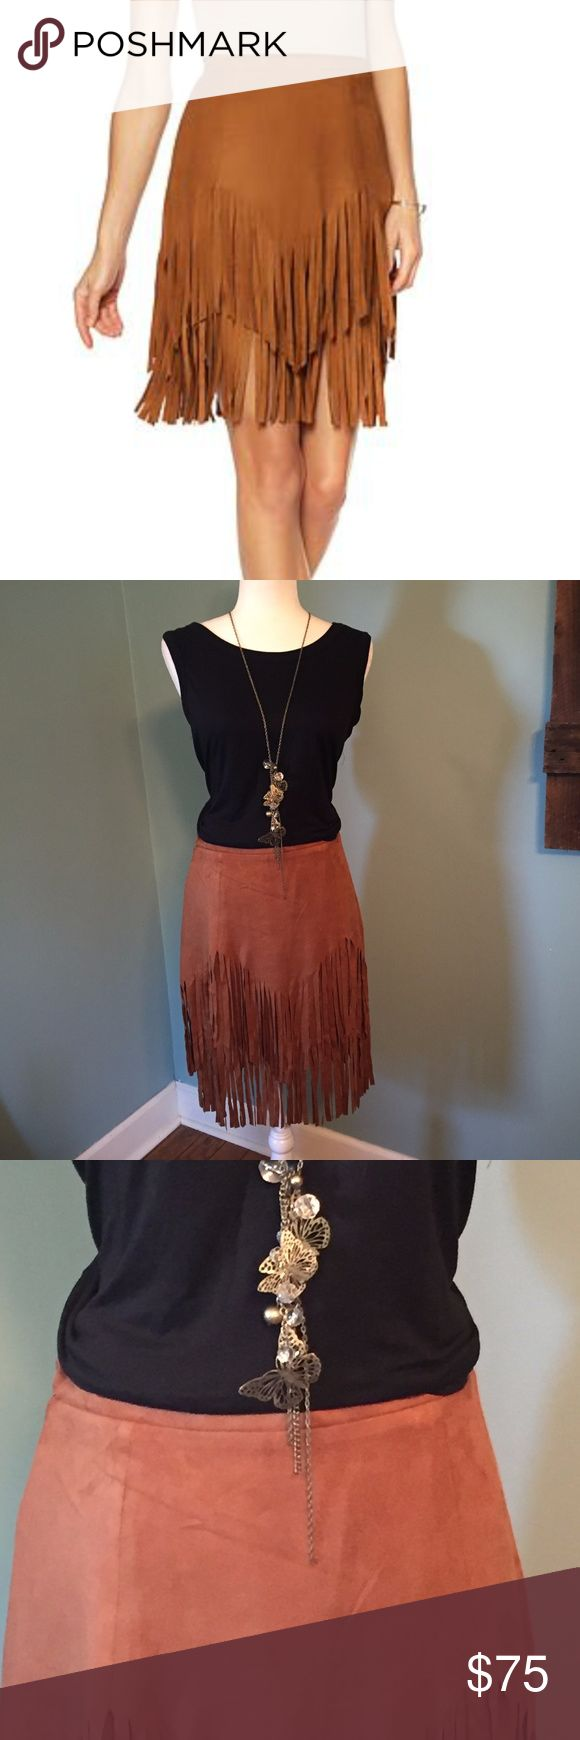 NWT Sheryl Crow Faux Suede Fringe Skirt Sz 8 Sheryl Crow Faux Suede Fringe Skirt  Size 8 in Cognac color.  This skirt is new with tags, is fully lined and has a side zipper. This faux suede fabric is soft to the touch and generates warmth this cold-weather season. The flirty details work together to give your sweaters a run for their style. Top it with blouses, blazers, cardigans and all your coats. See photos for size chart/measurements Sheryl Crow Skirts